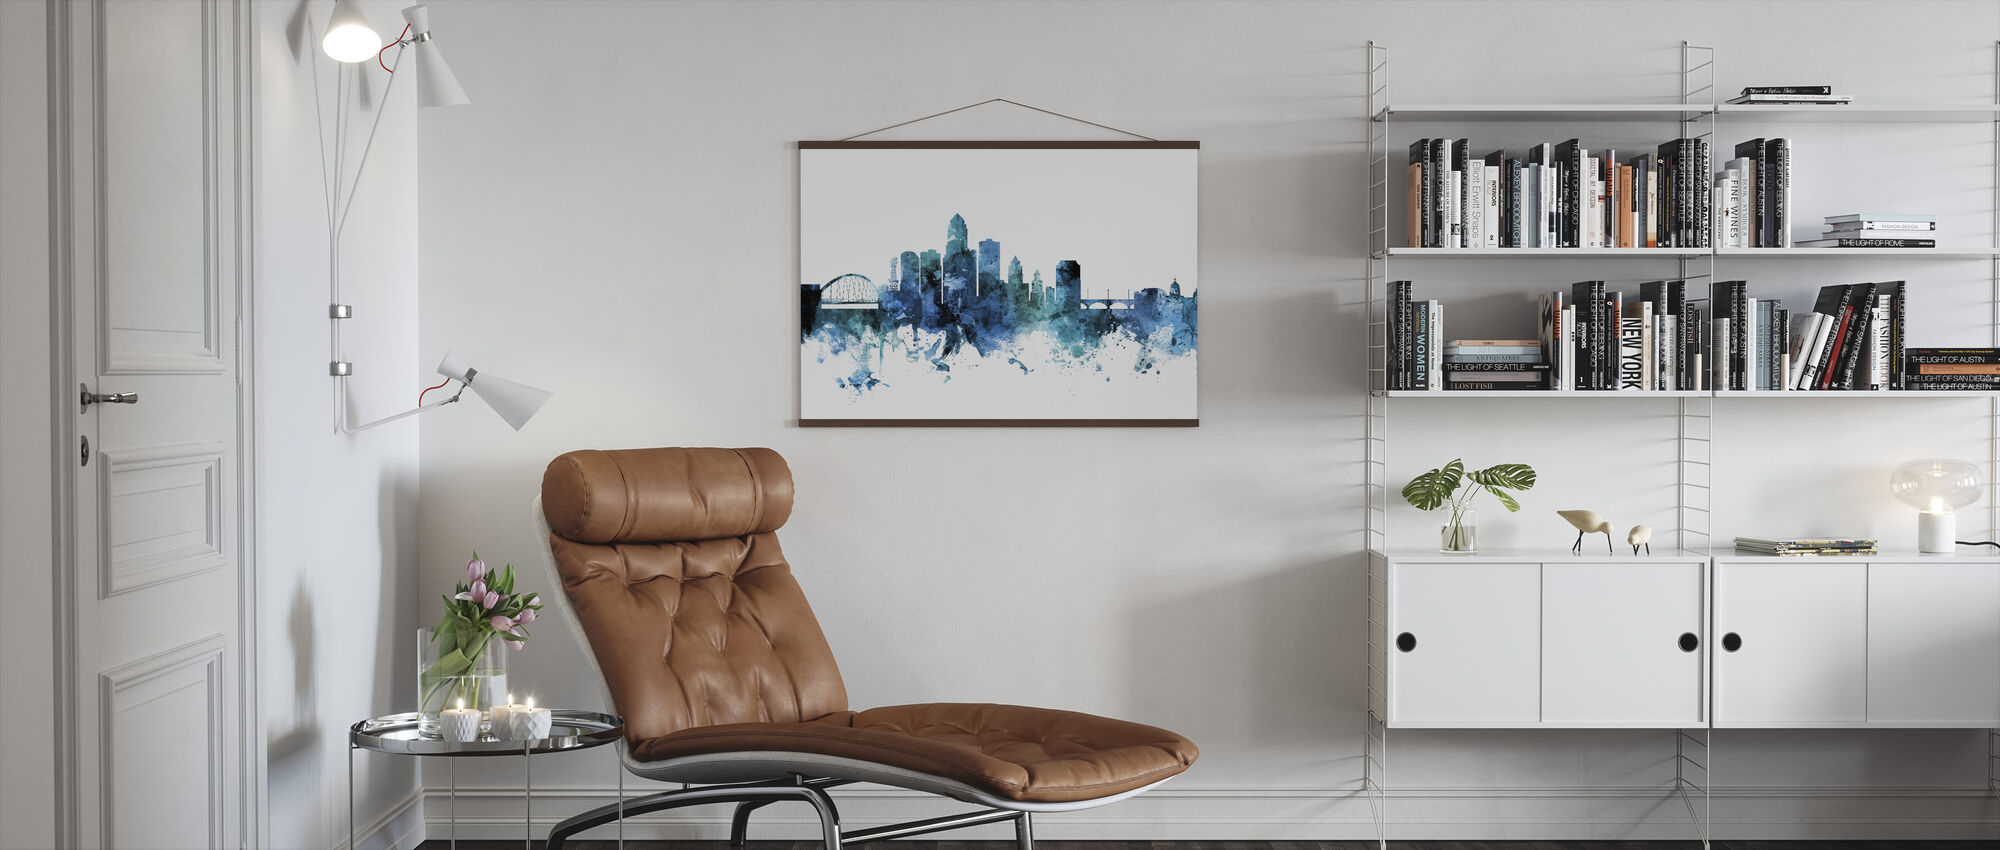 Des Moines Iowa Skyline - Poster - Living Room